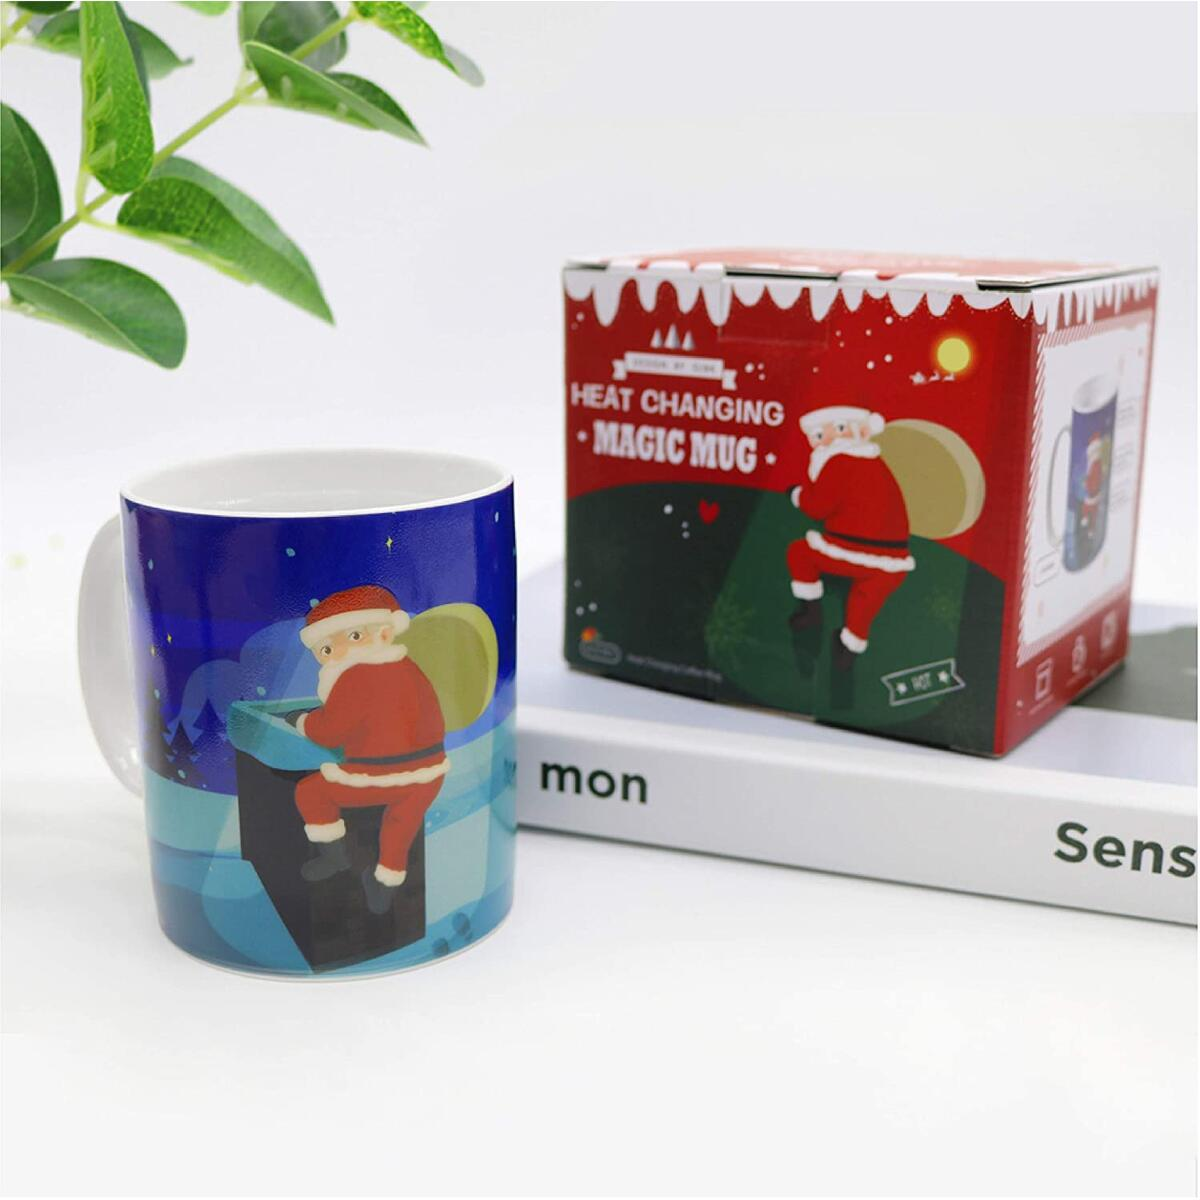 OJBK Heat Changing Coffee Mug - Add Coffee or Tea You Will Find It is Actually The Santa Clause Who Climbed The Pipe,Not The Thief - 11 Ounce Funny Coffee Mug - Perfect Christmas Gift with Fun Box